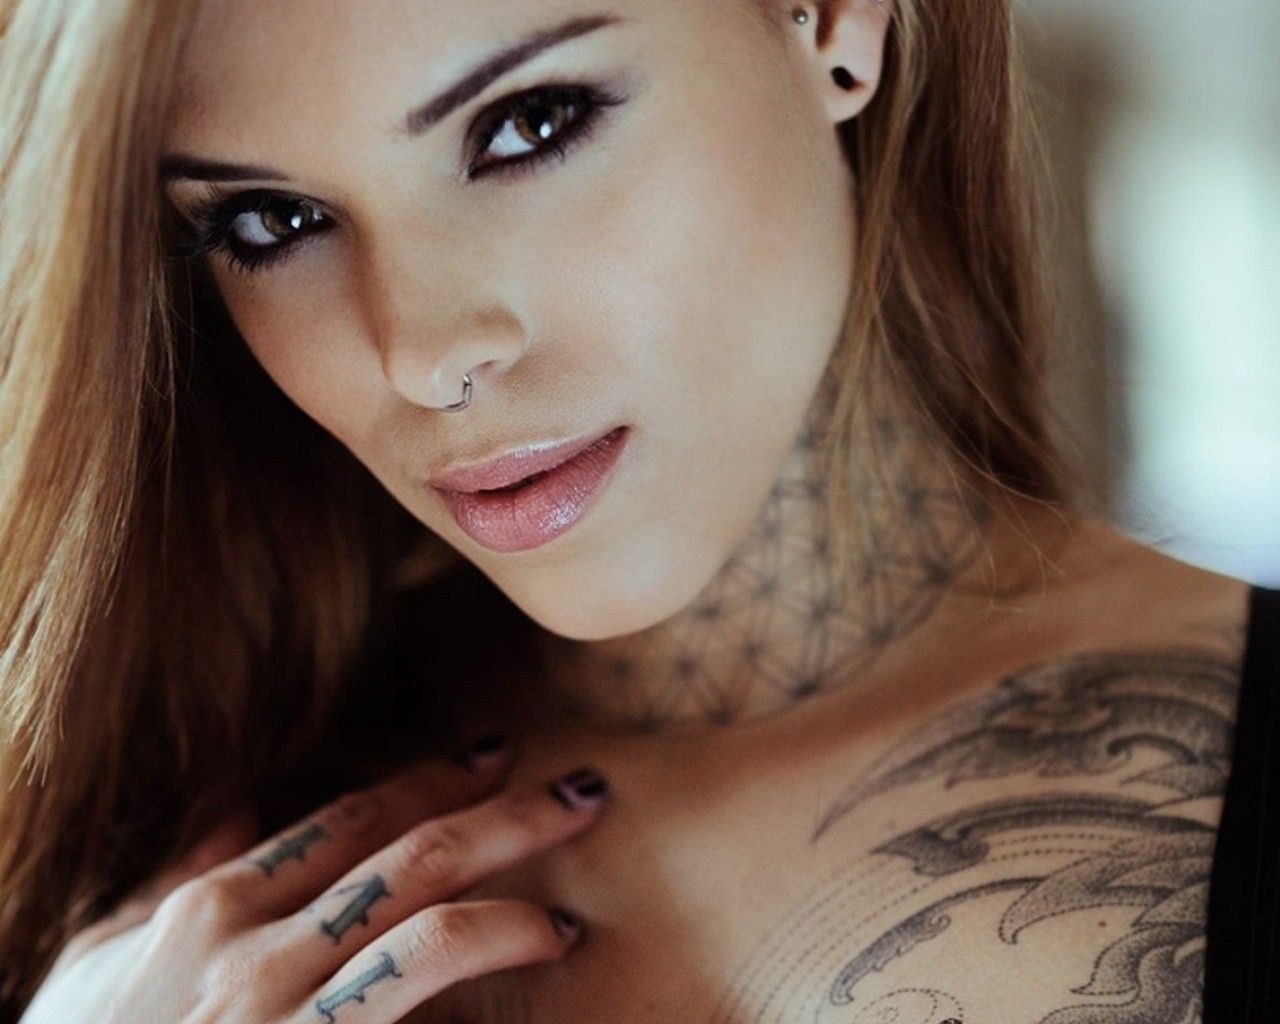 Arabella drummond wallpapers images photos pictures for Tumblr tit tattoo